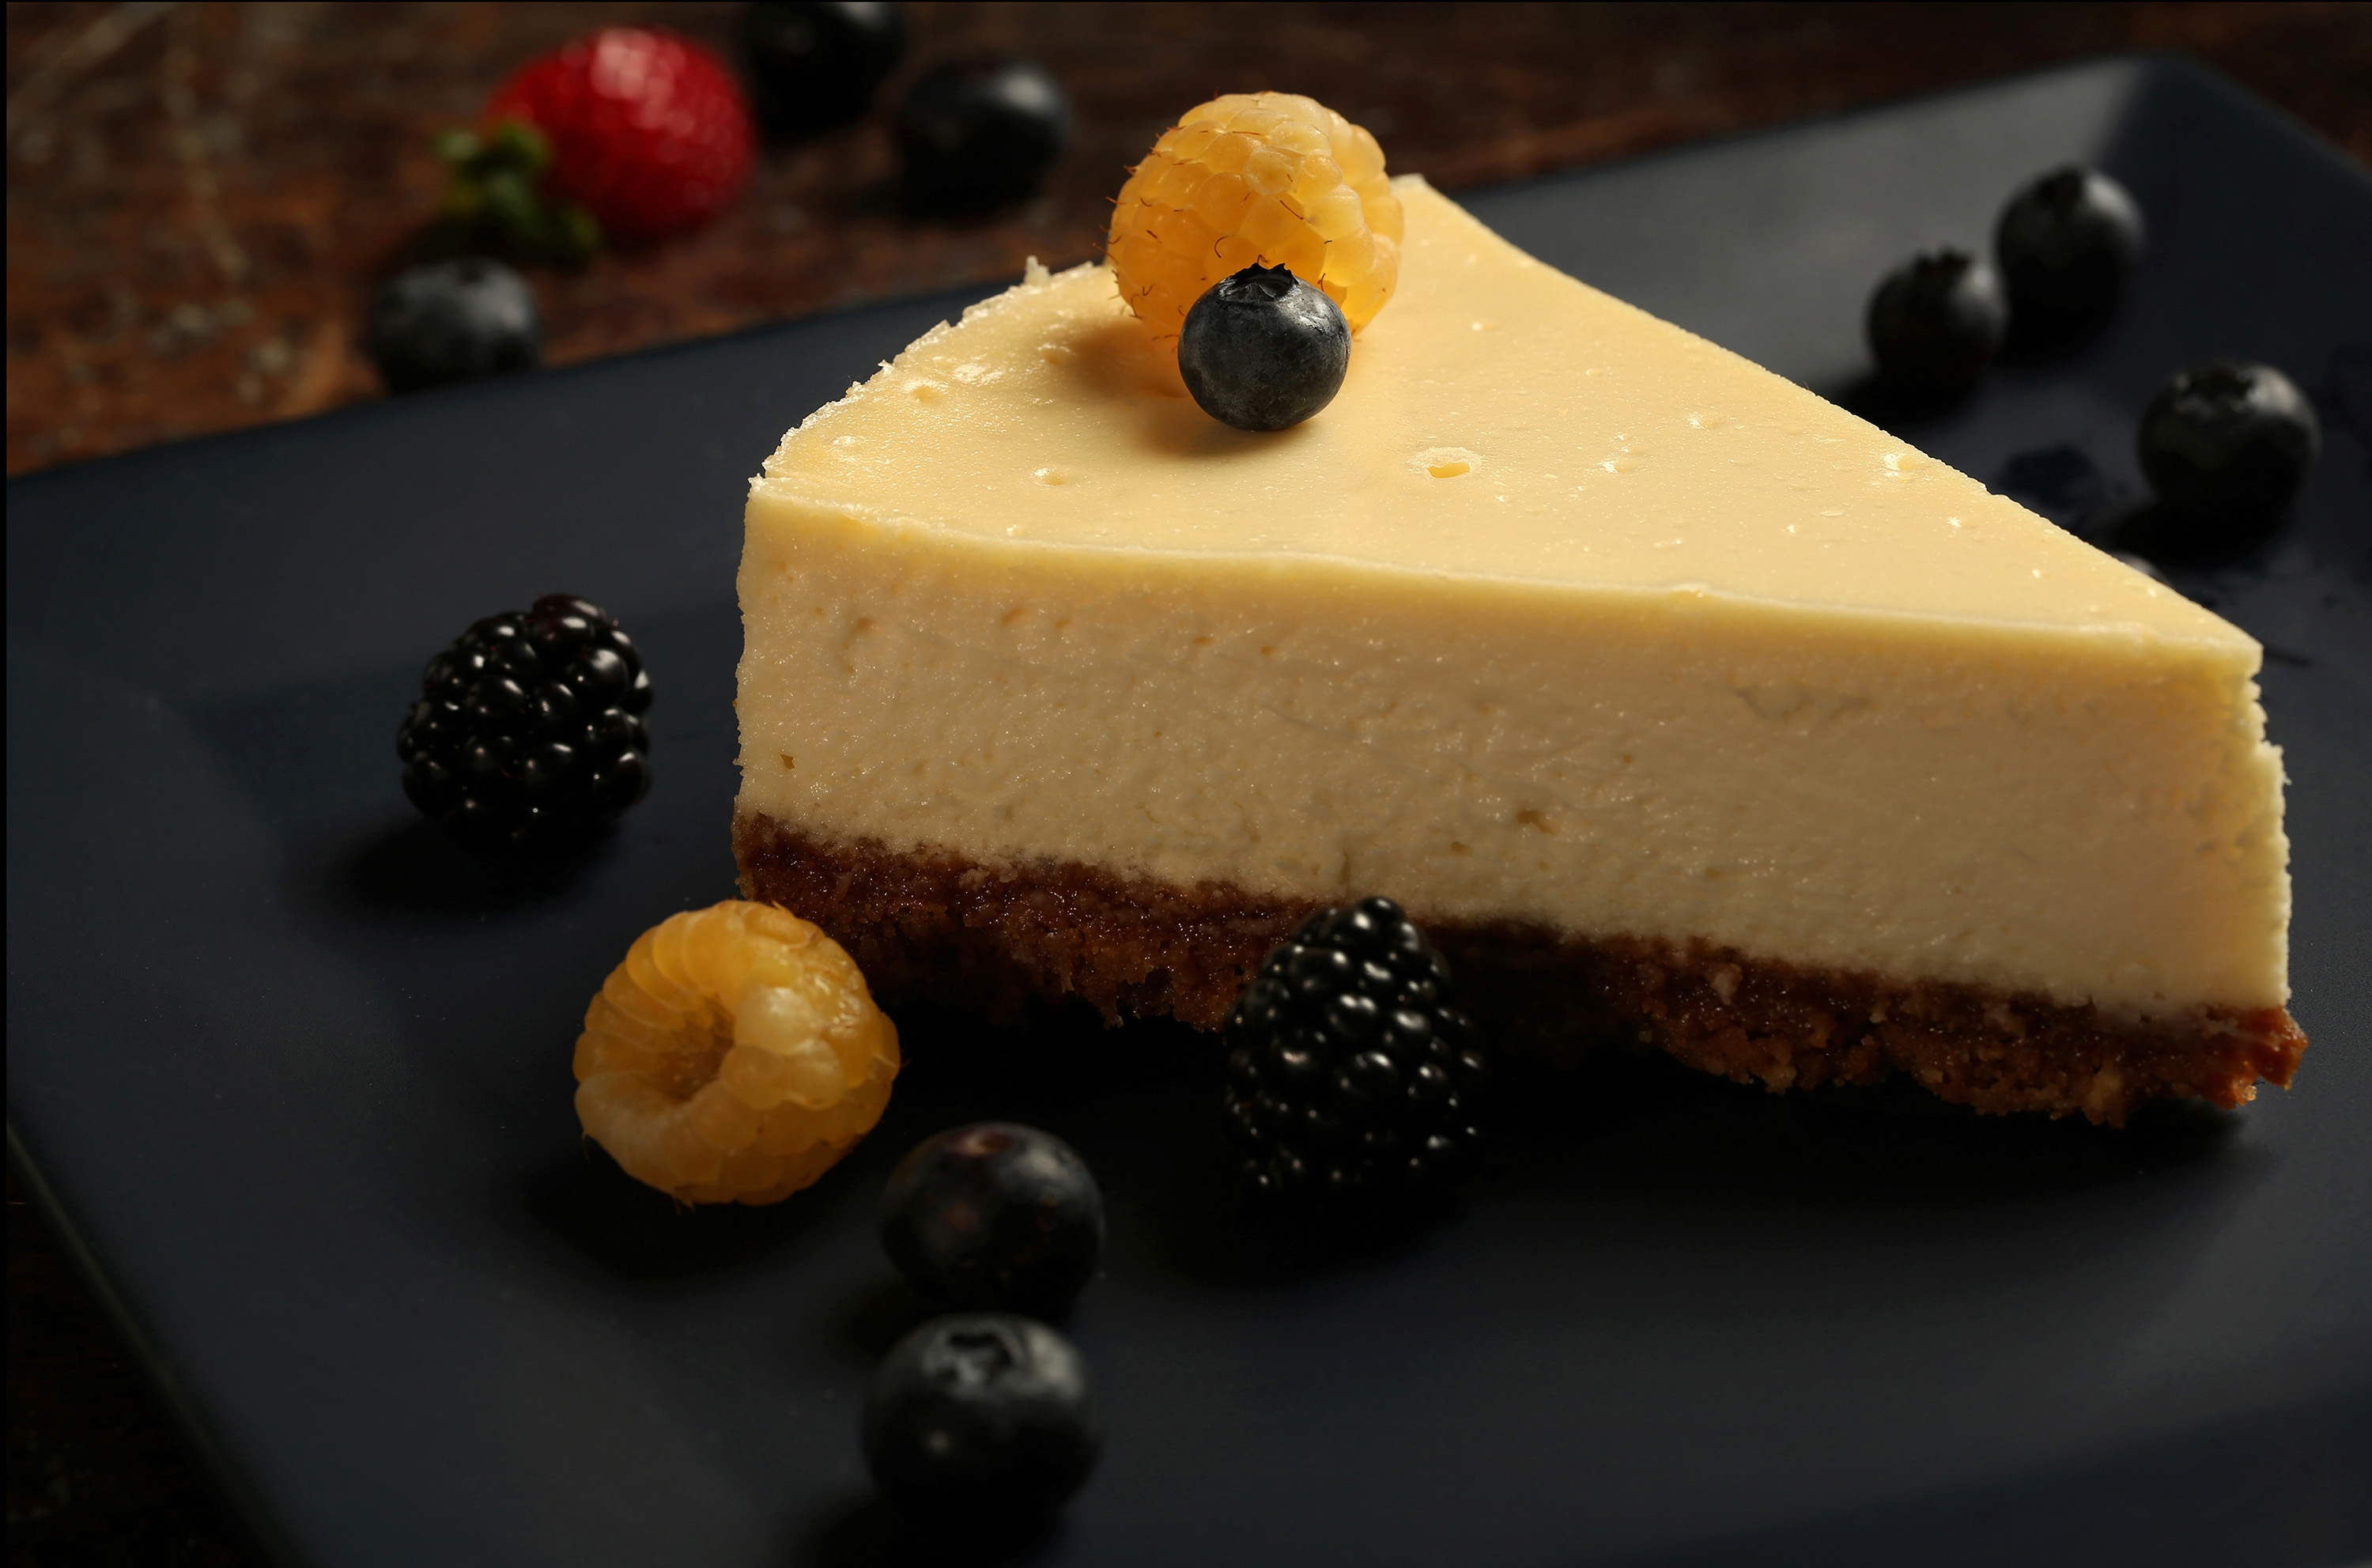 Fresh, plain goat cheese brings a subtle tang and dense texture to a creamy, soft cheesecake.